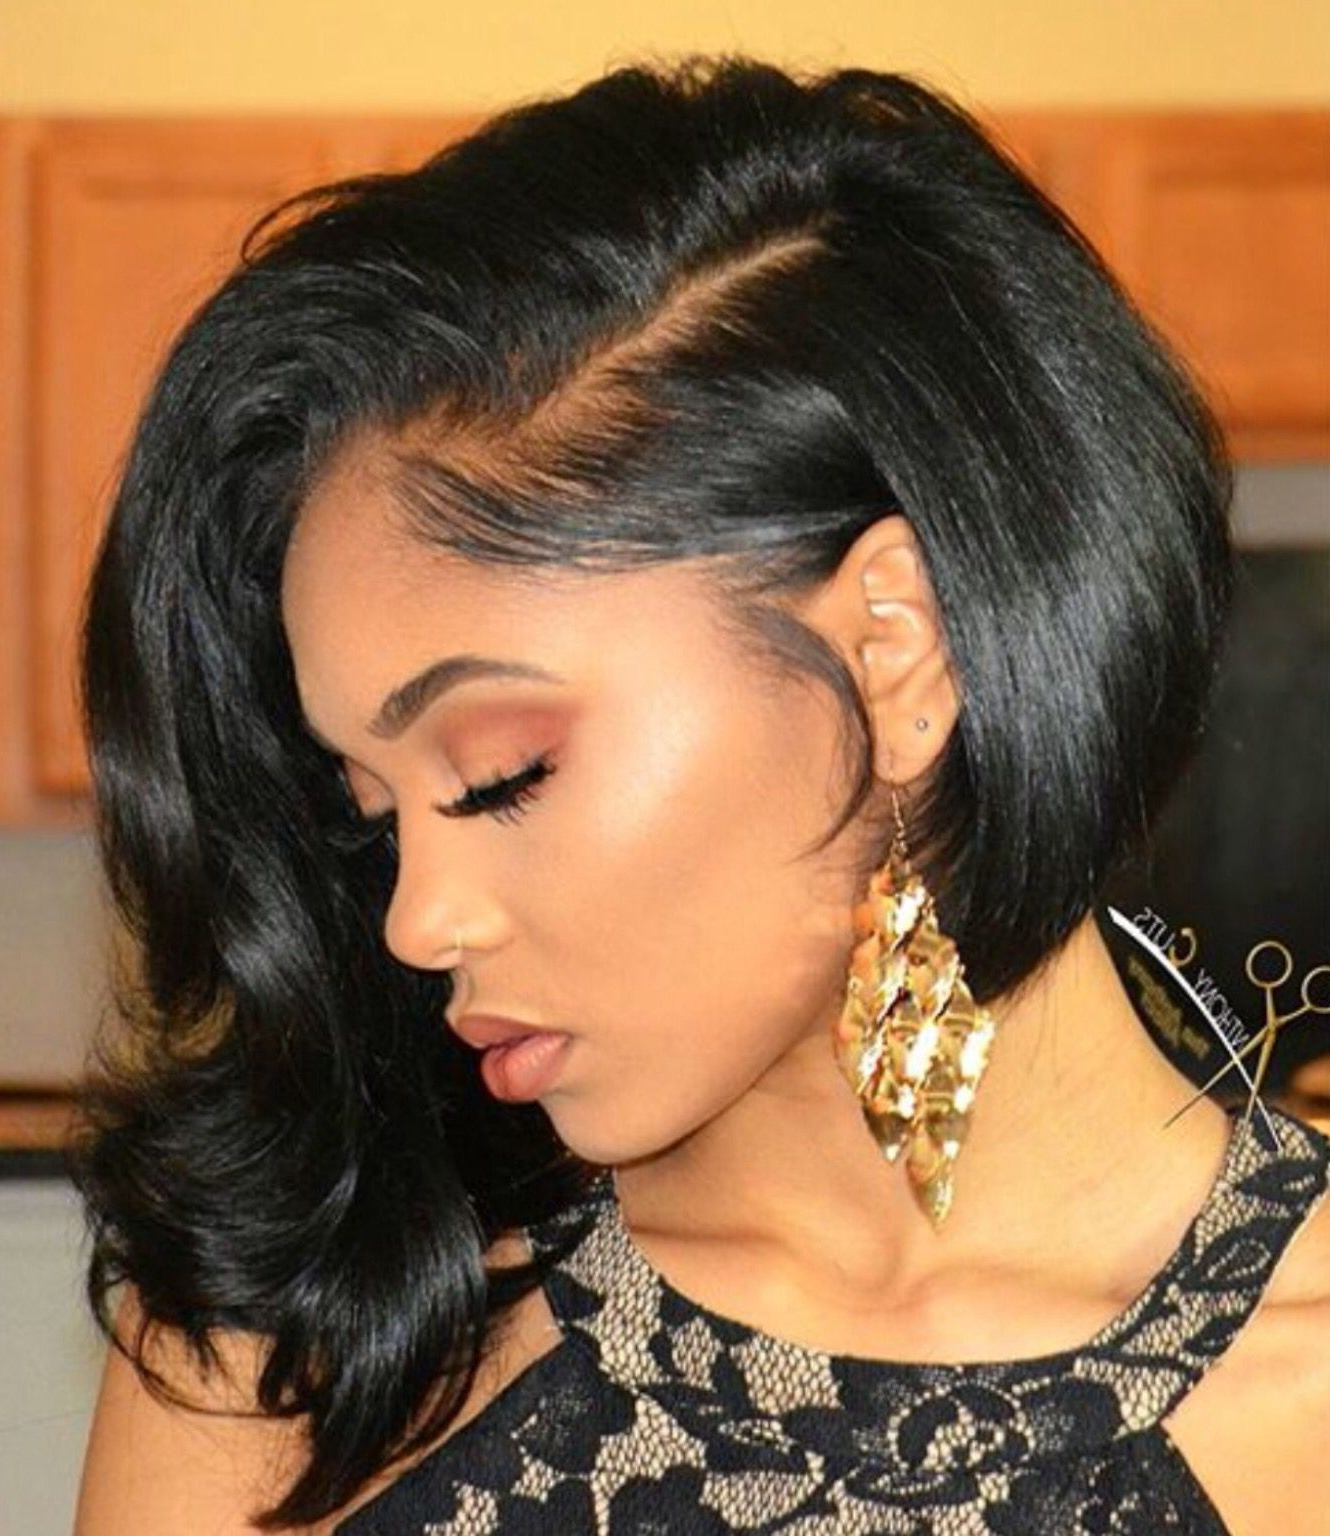 Prepossessing Cute Short Curly Bob Hairstyles With 15 Curly Weave Within Cute Curly Bob Hairstyles (View 5 of 25)